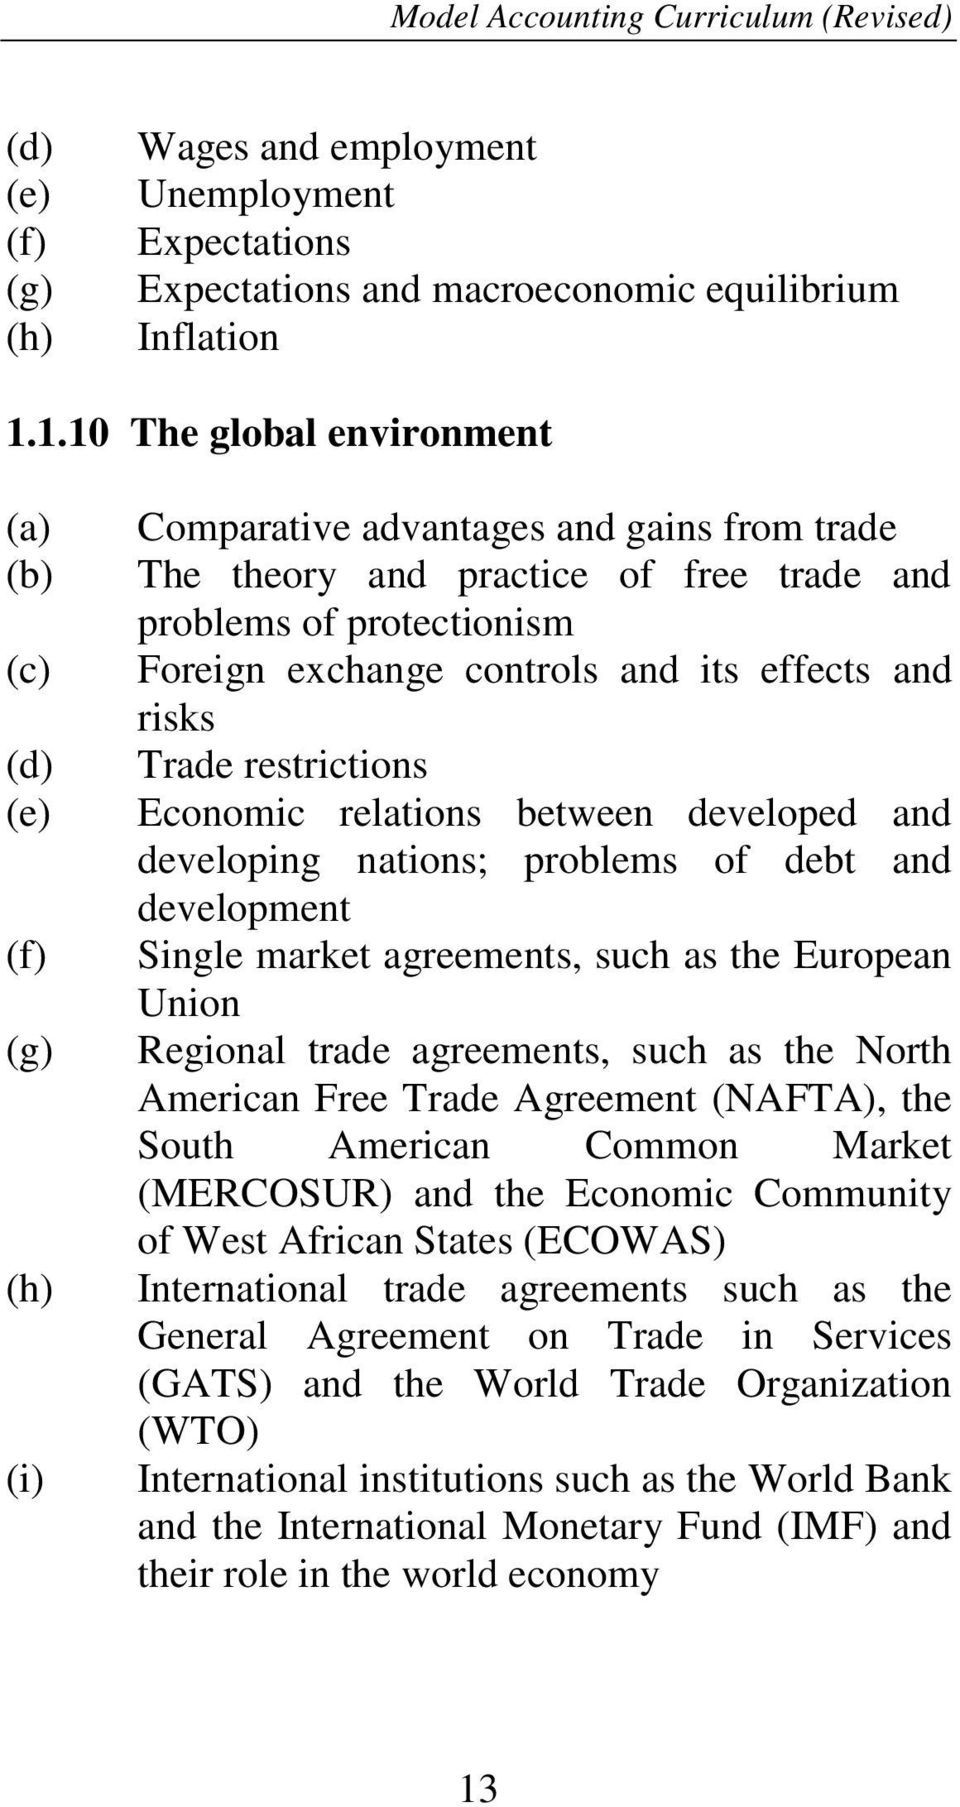 effects and risks Trade restrictions Economic relations between developed and developing nations; problems of debt and development Single market agreements, such as the European Union Regional trade